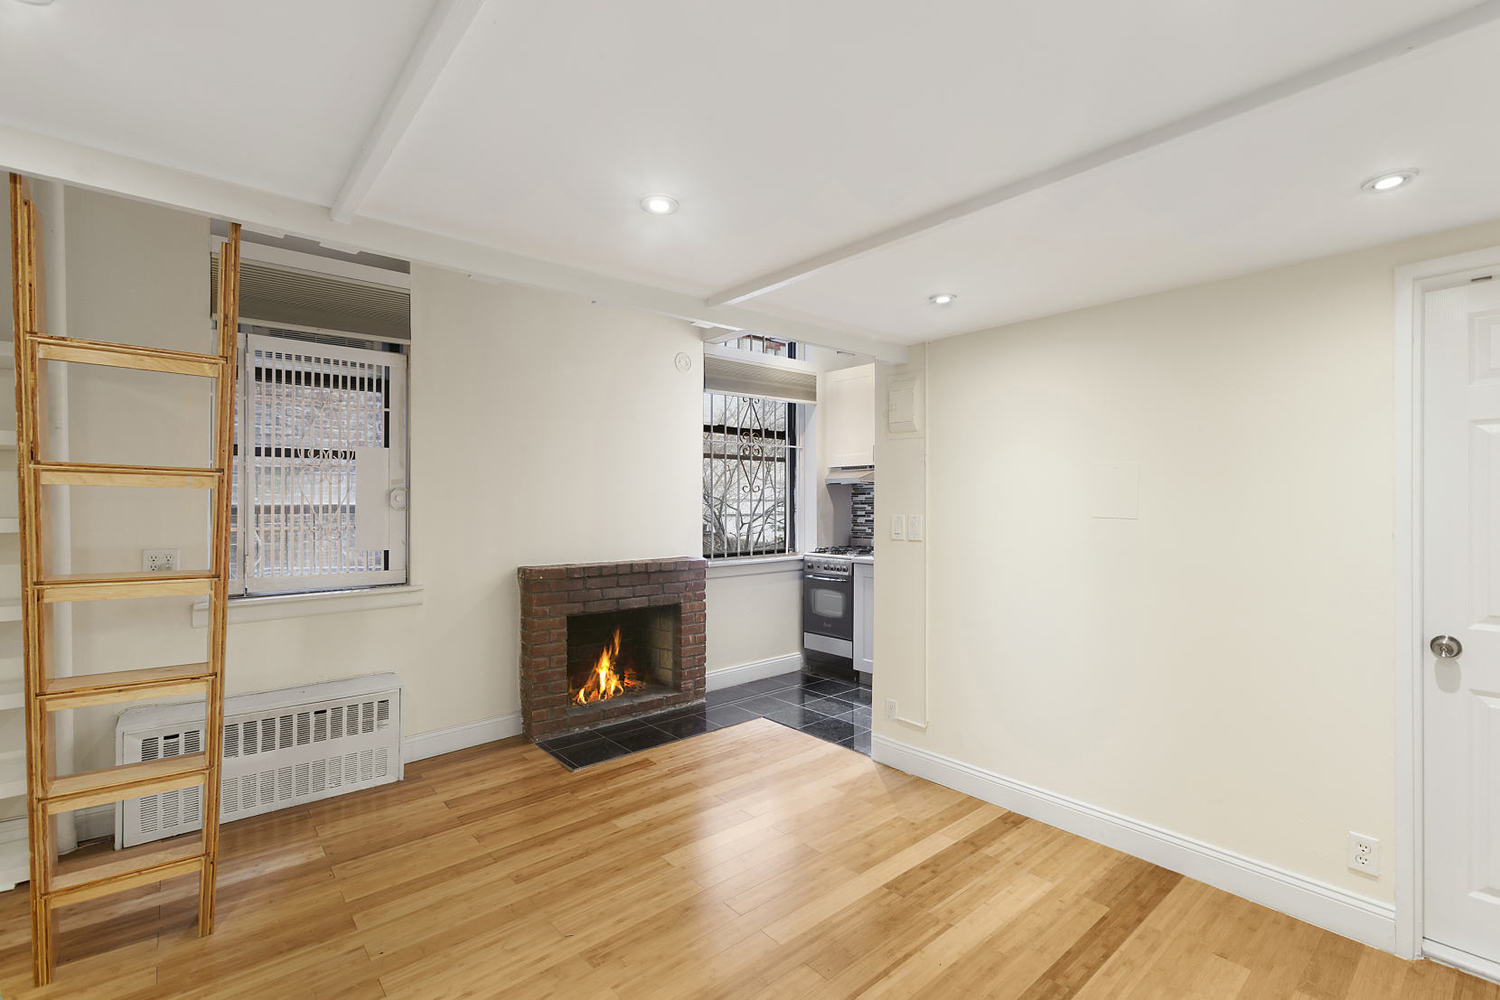 327 West 85th Street, Unit 1C Manhattan, NY 10024